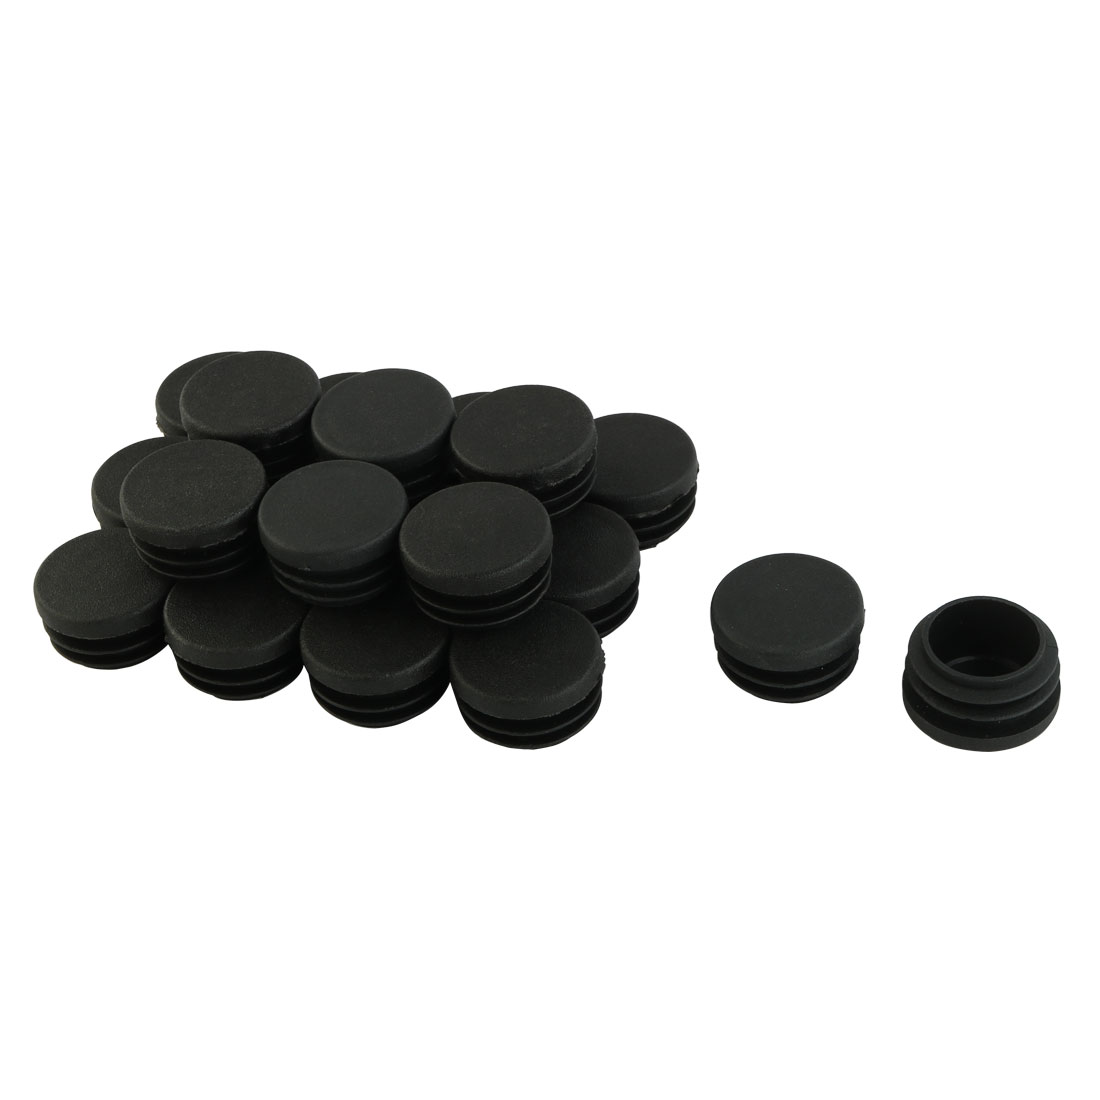 Table Chair Legs Plastic Round Tube Insert Cover Protector Black 30mm Dia 20pcs